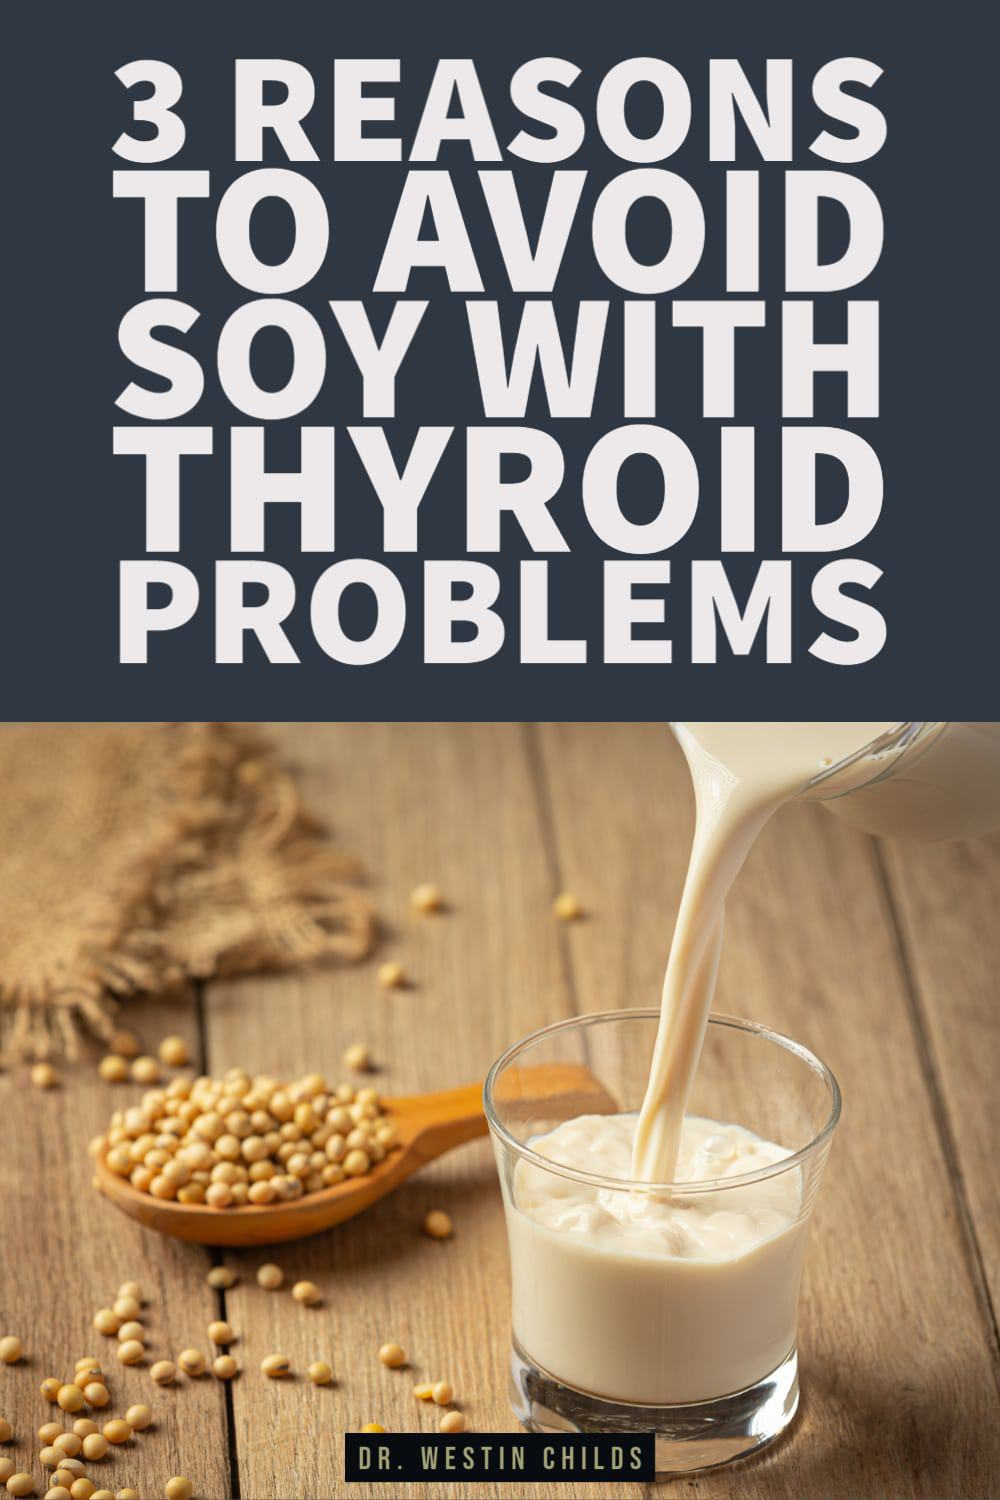 3 reasons to avoid soy if you have thyroid problems